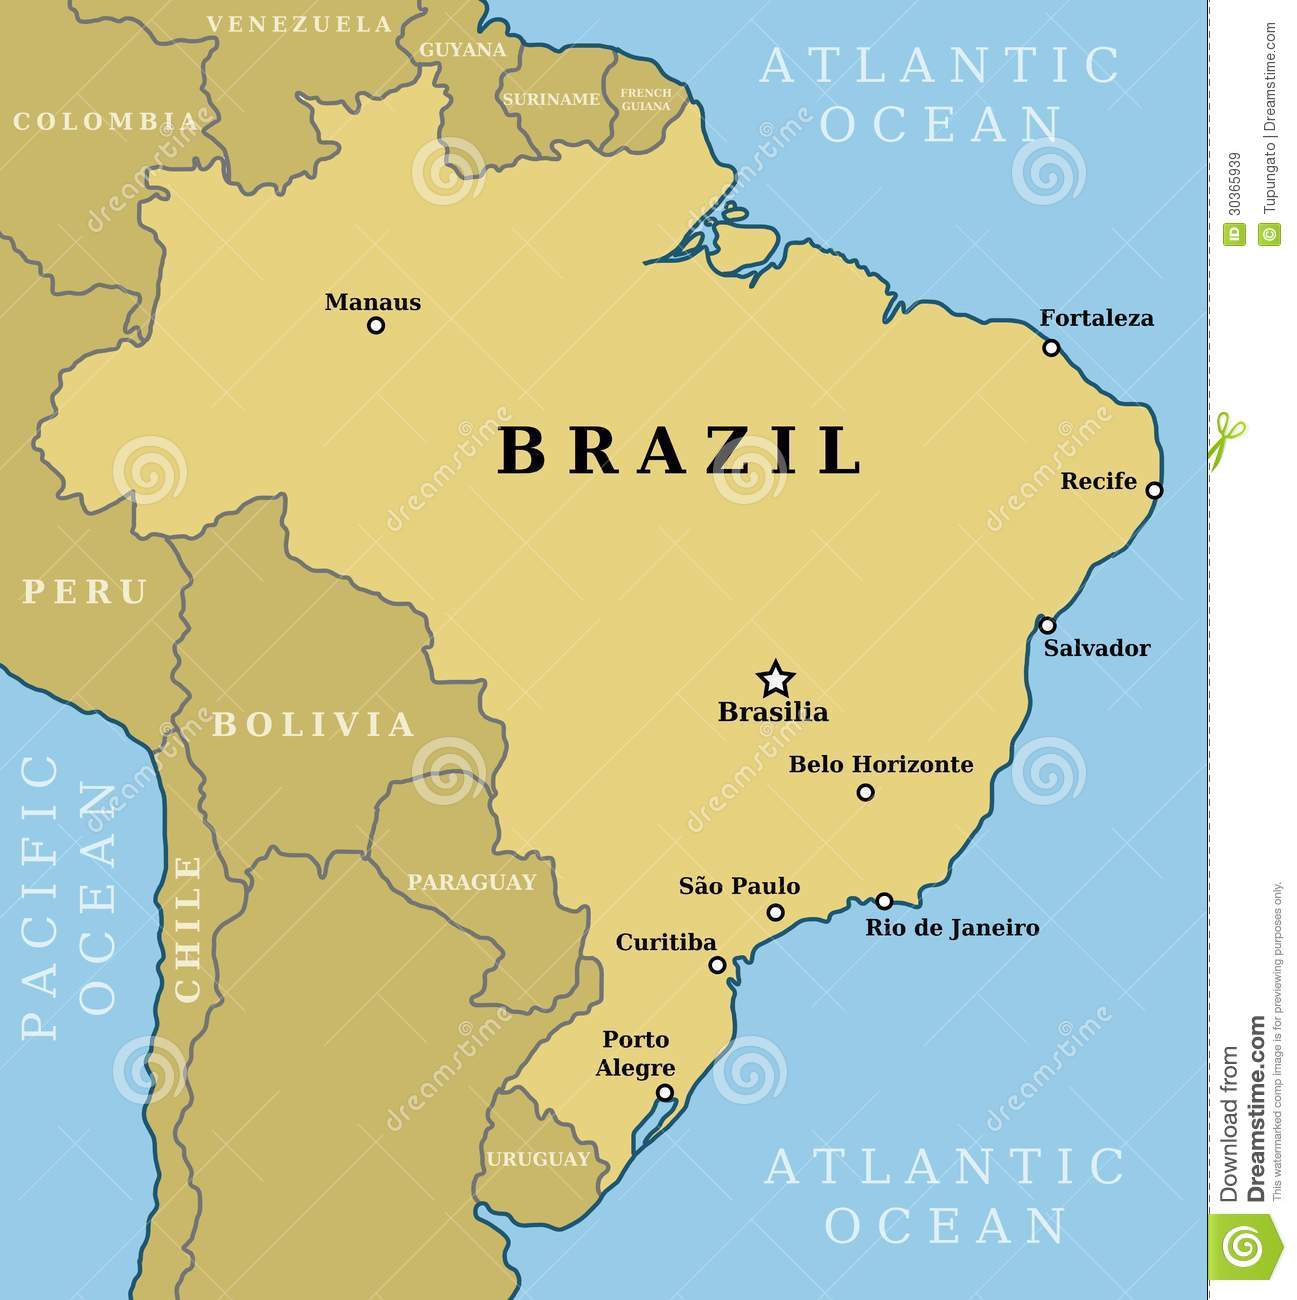 The capital of Brazil. Which city is the capital of Brazil 76